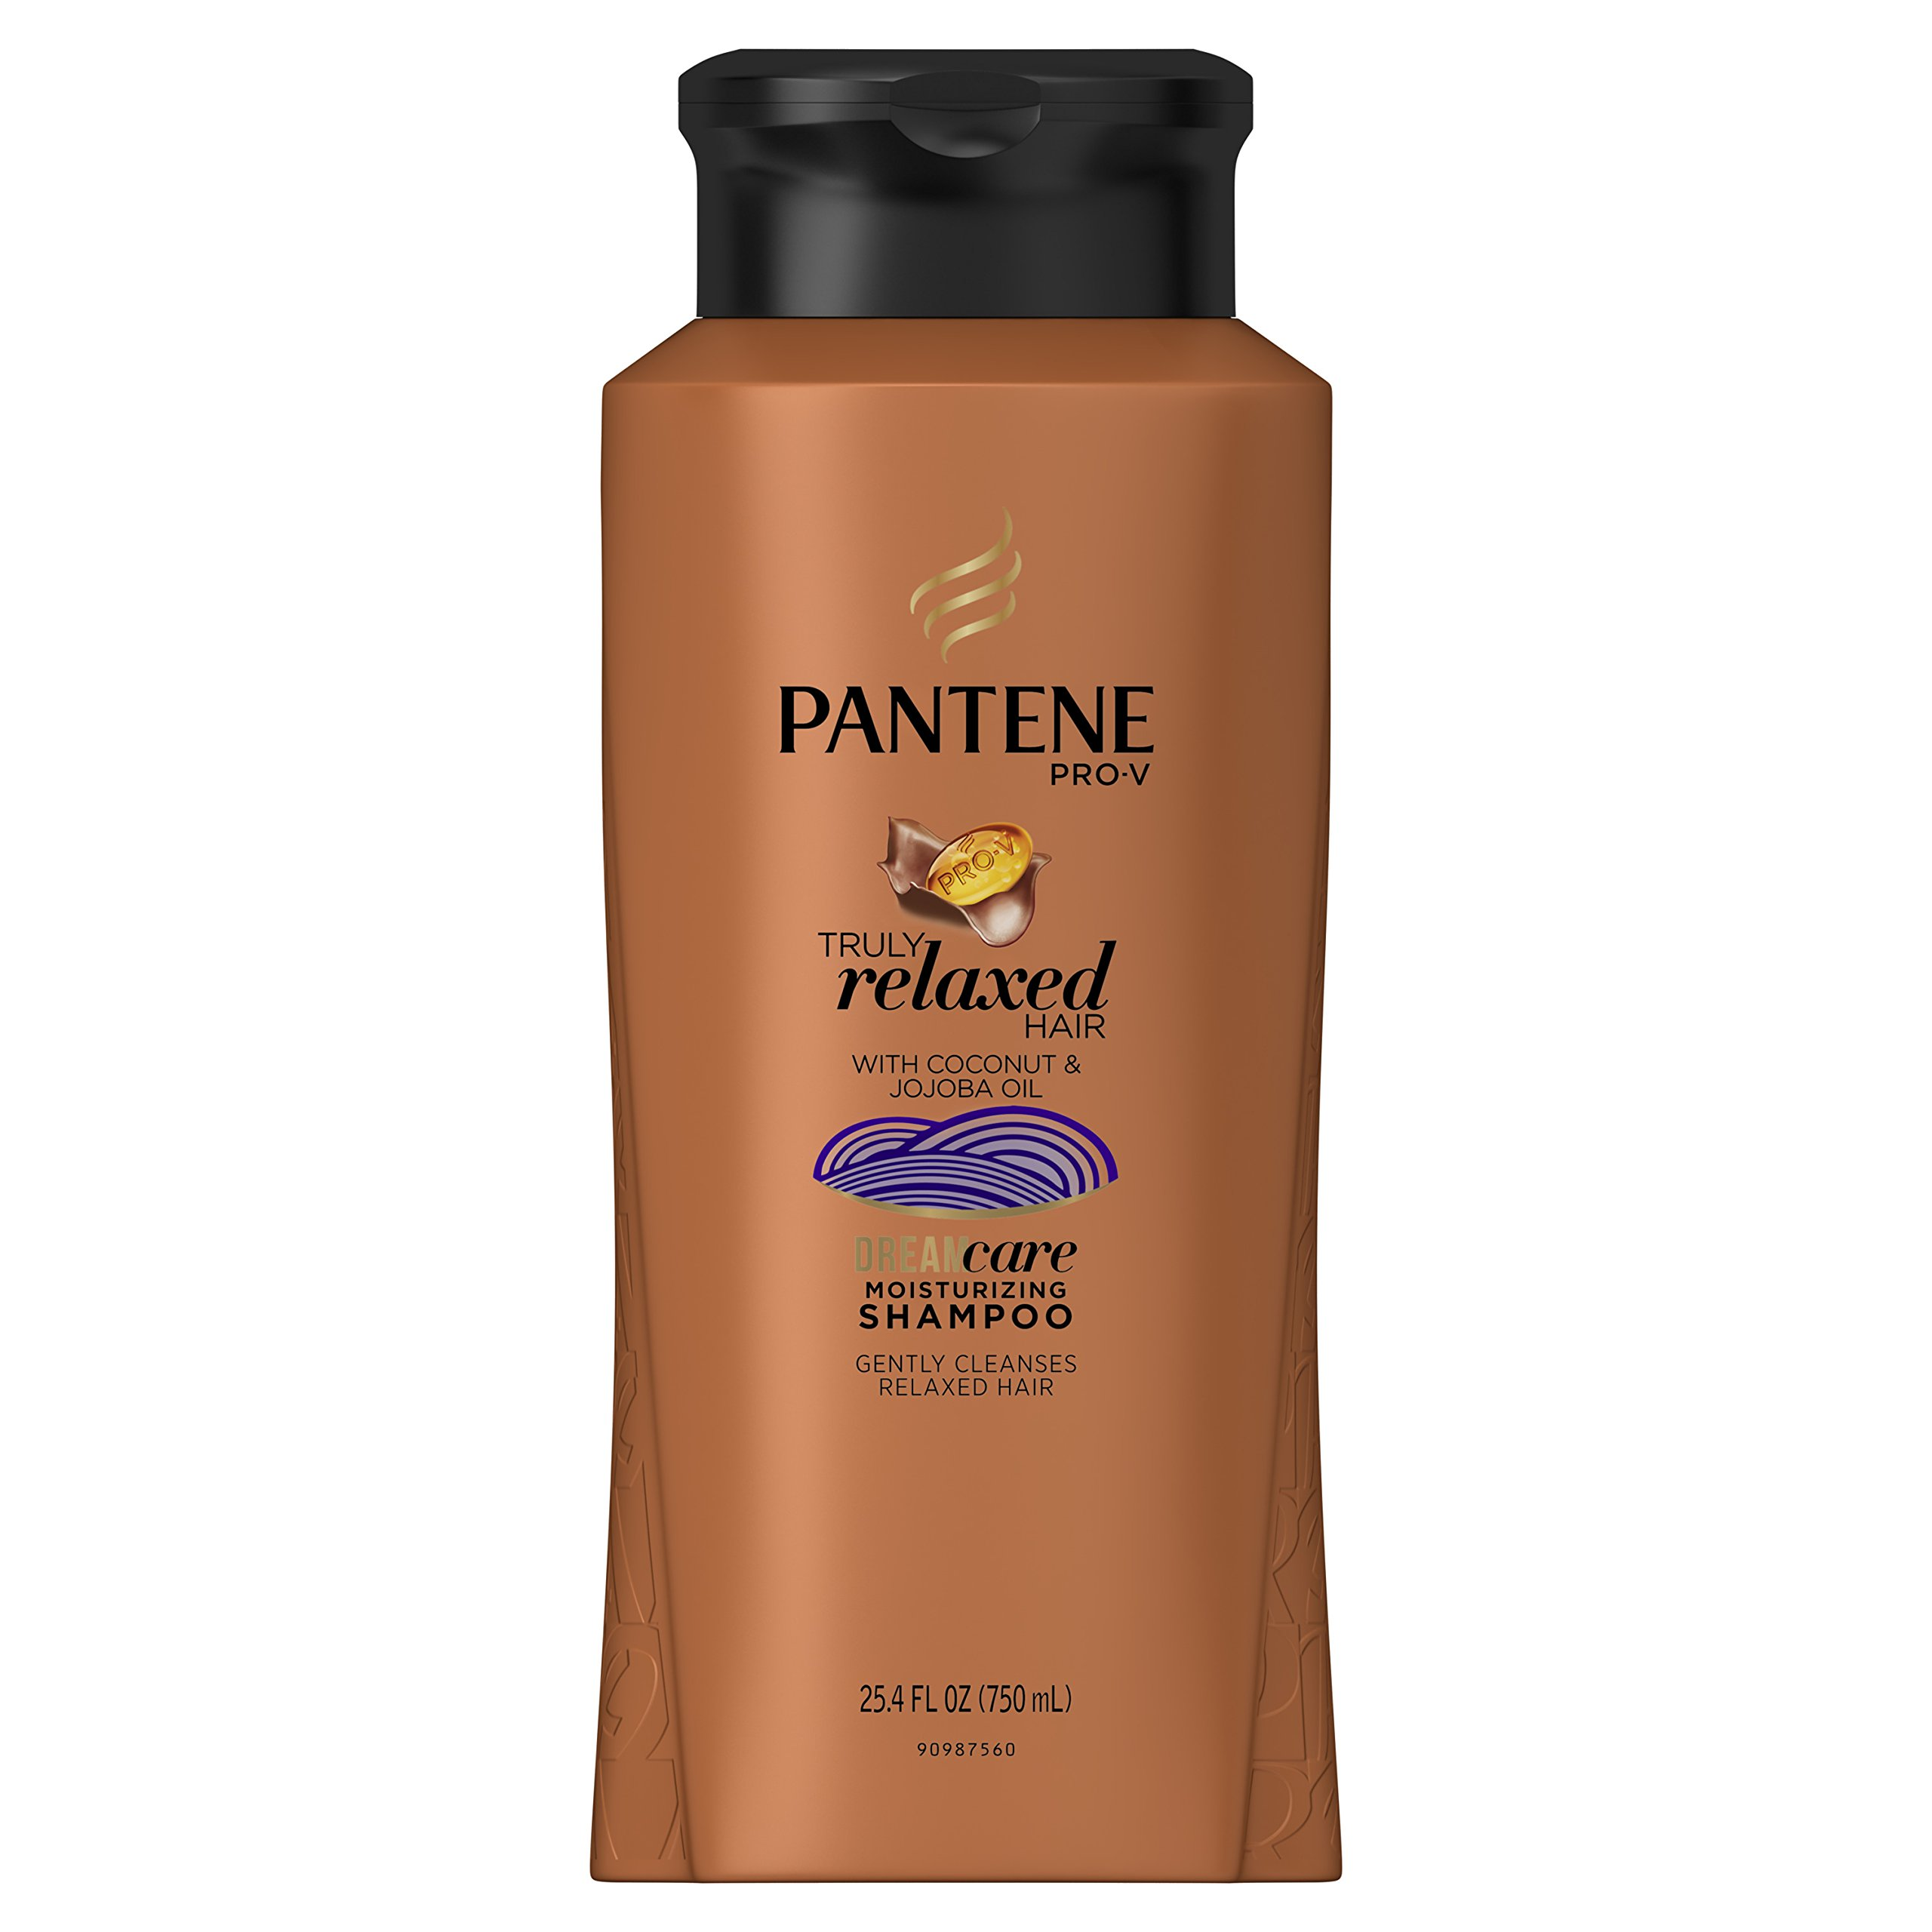 Pantene Pro-V Truly Relaxed Moisturizing Shampoo 25.4 Fl Oz (Packaging may vary)